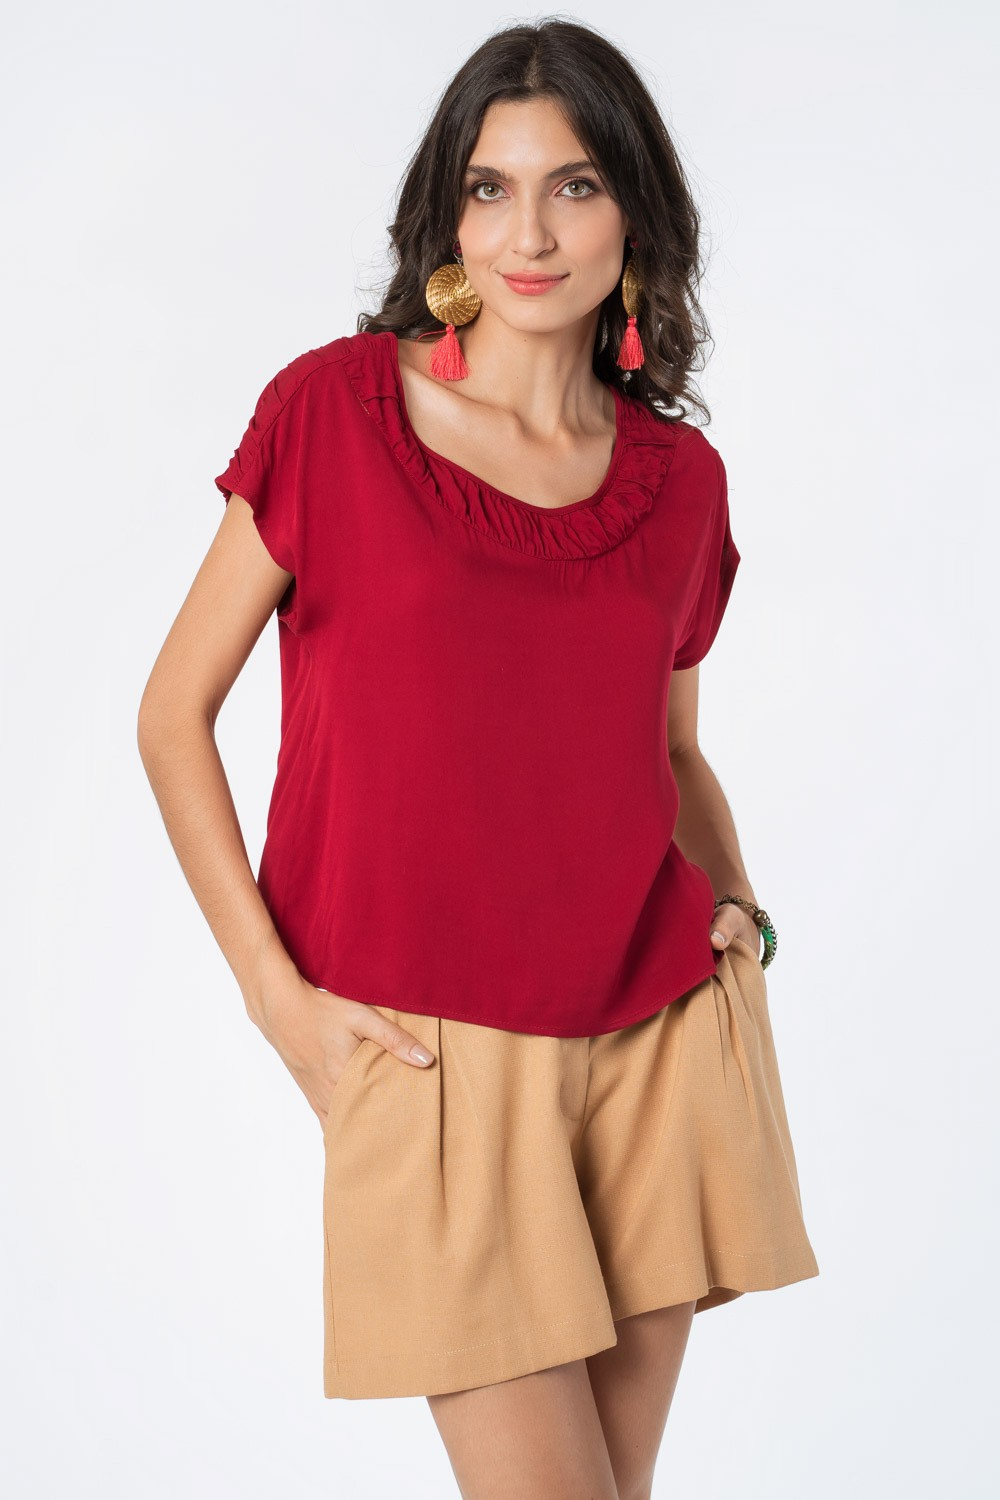 BLUSA LISA TWILL RAYON BORDÔ